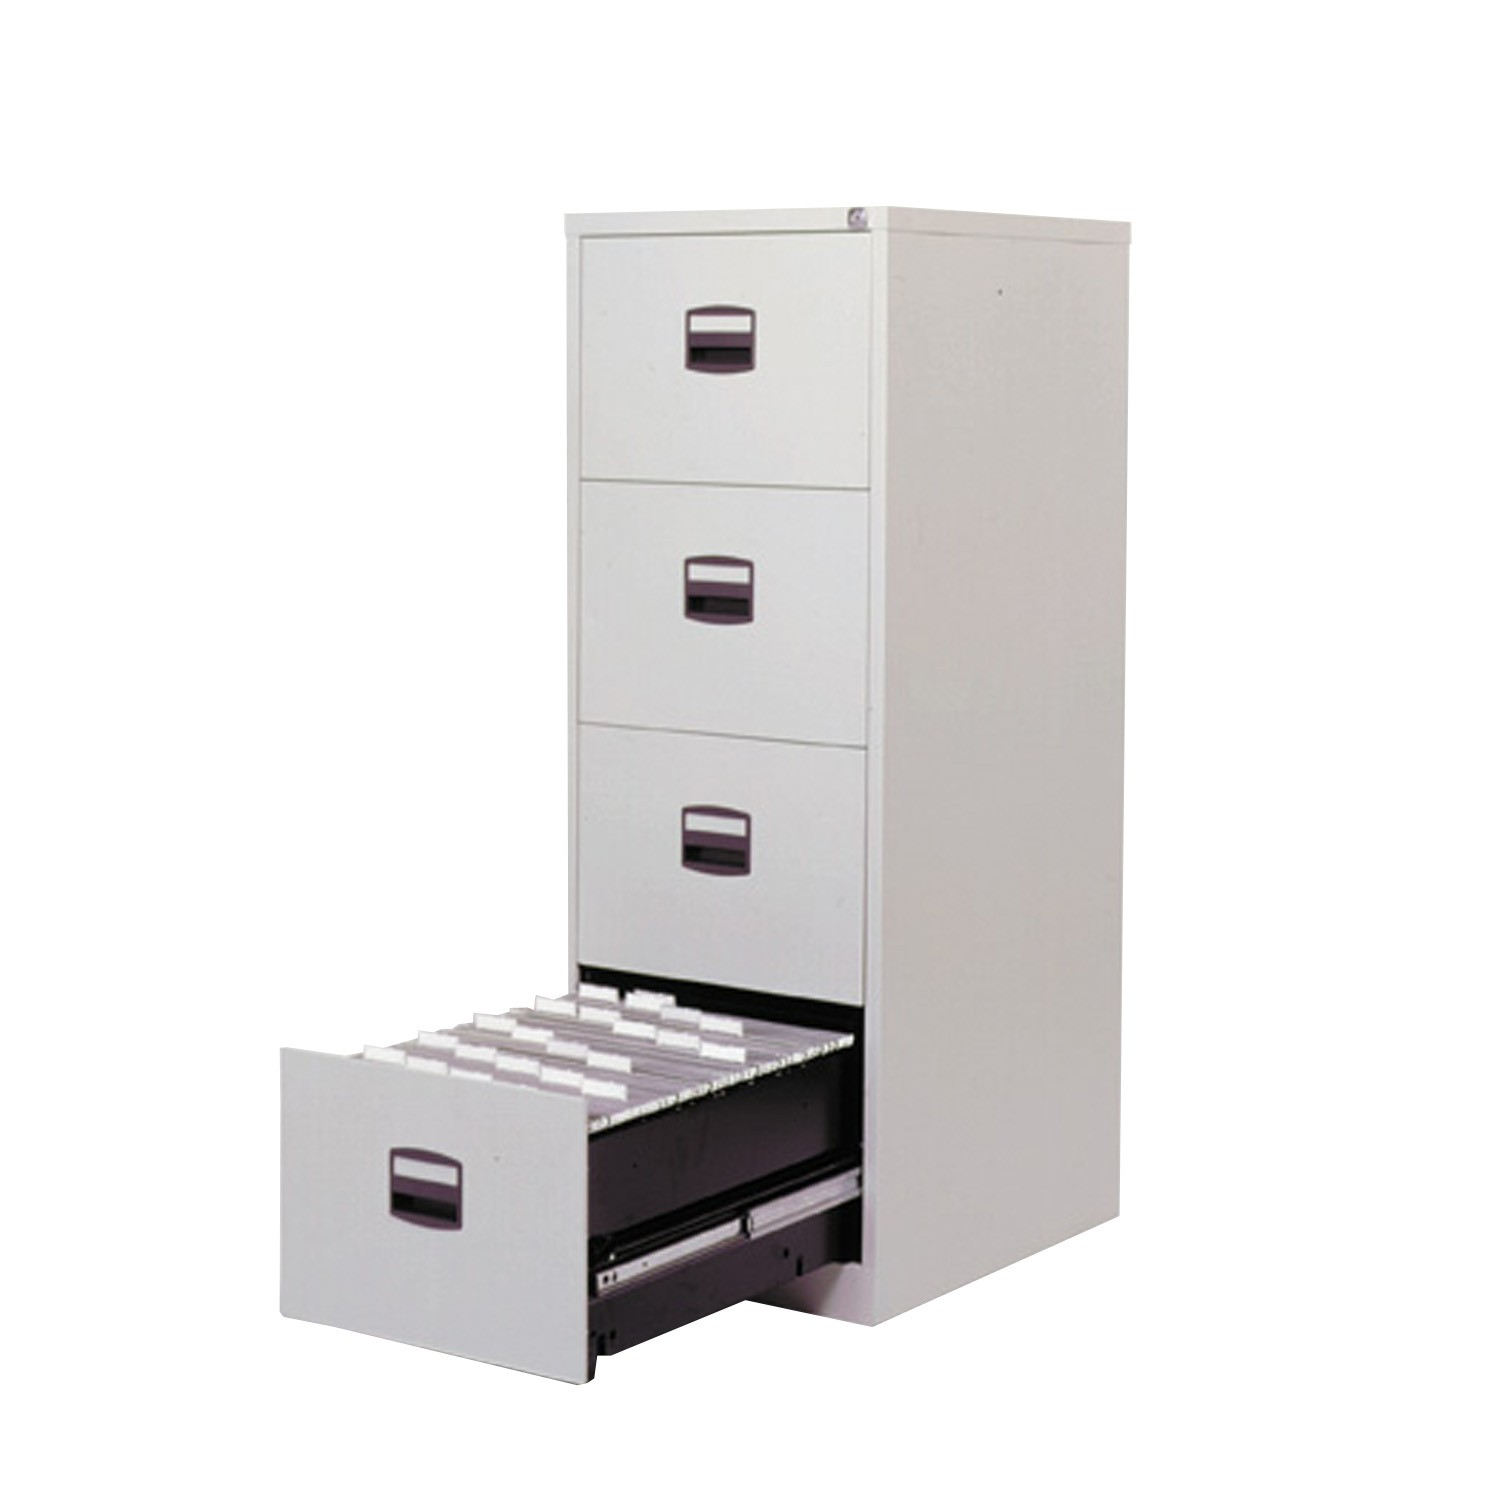 Brilliant Bisley File Cabinet for Best File Storage Ideas: Bisley File Cabinet | Bisley File Cabinets Sale | Container Store Filing Cabinet